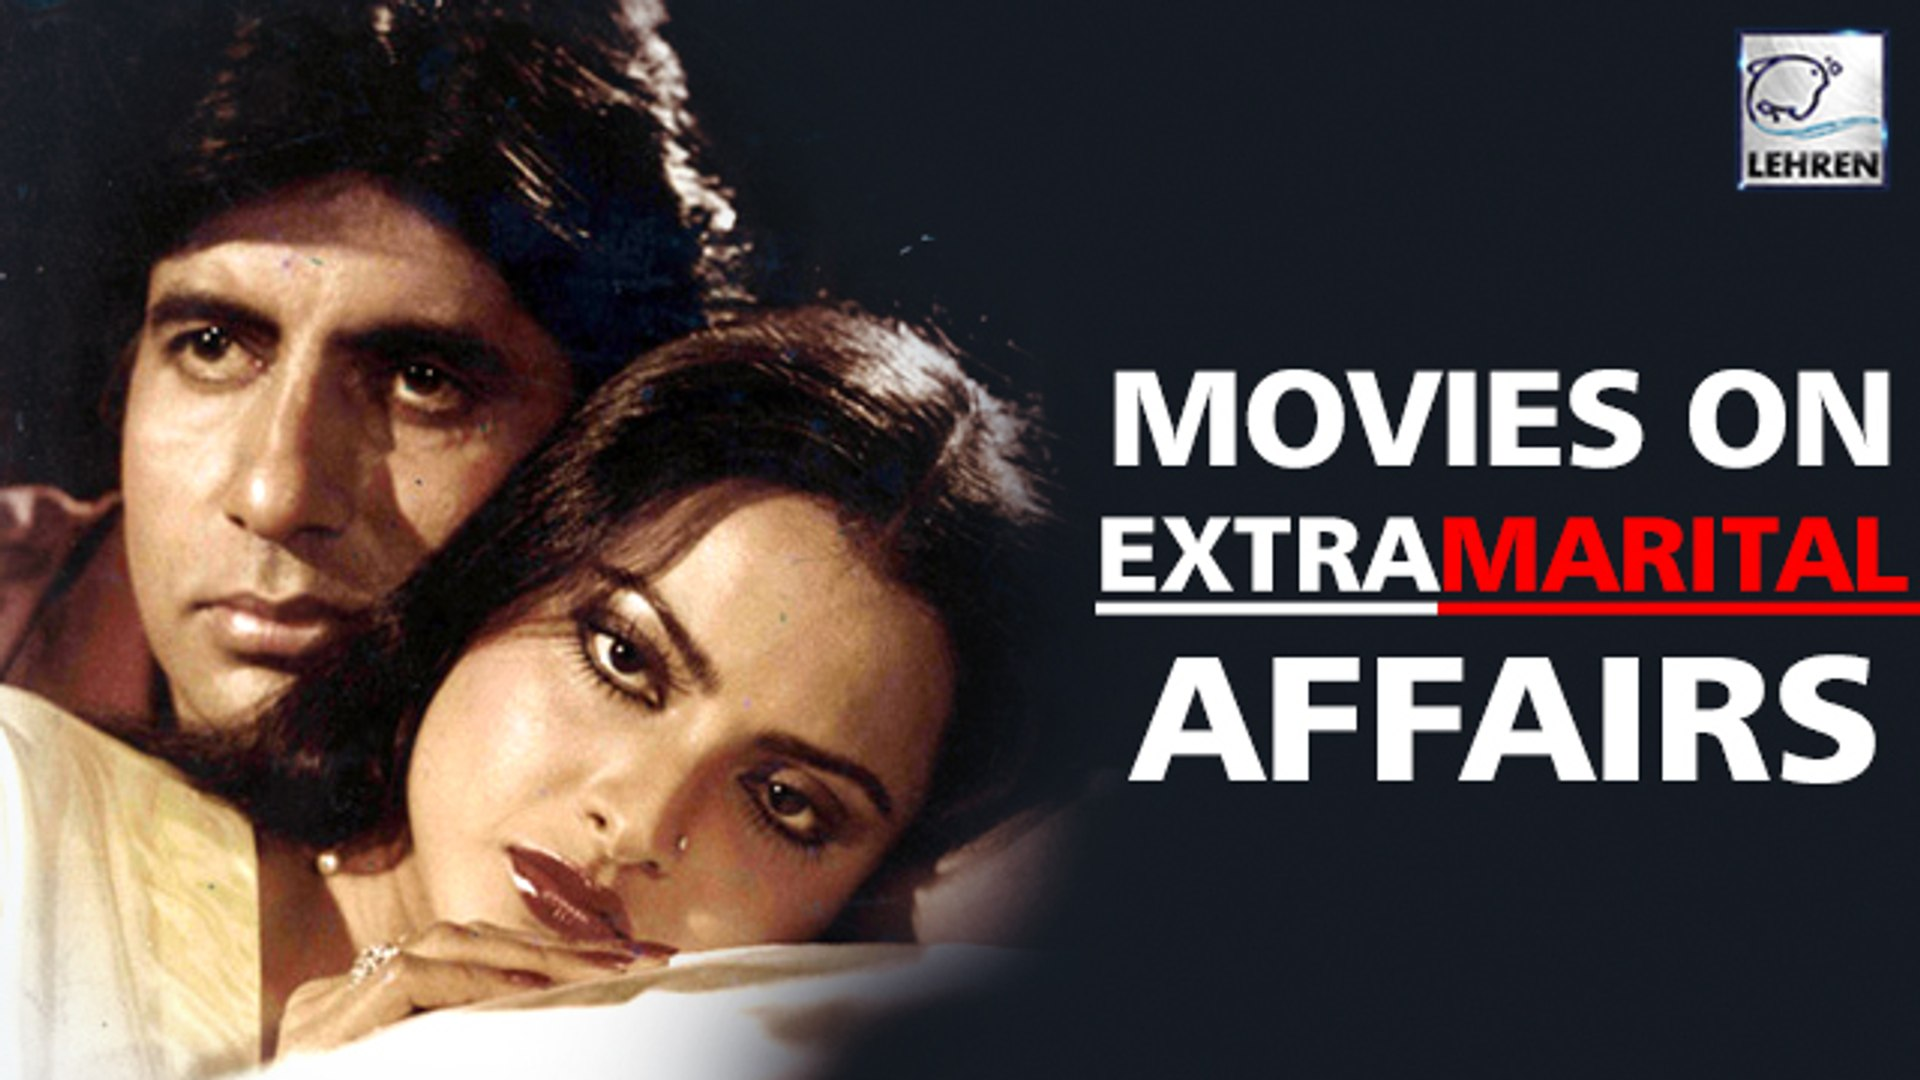 8 Top Bollywood Movies On Extra-Marital Affairs & Adultery